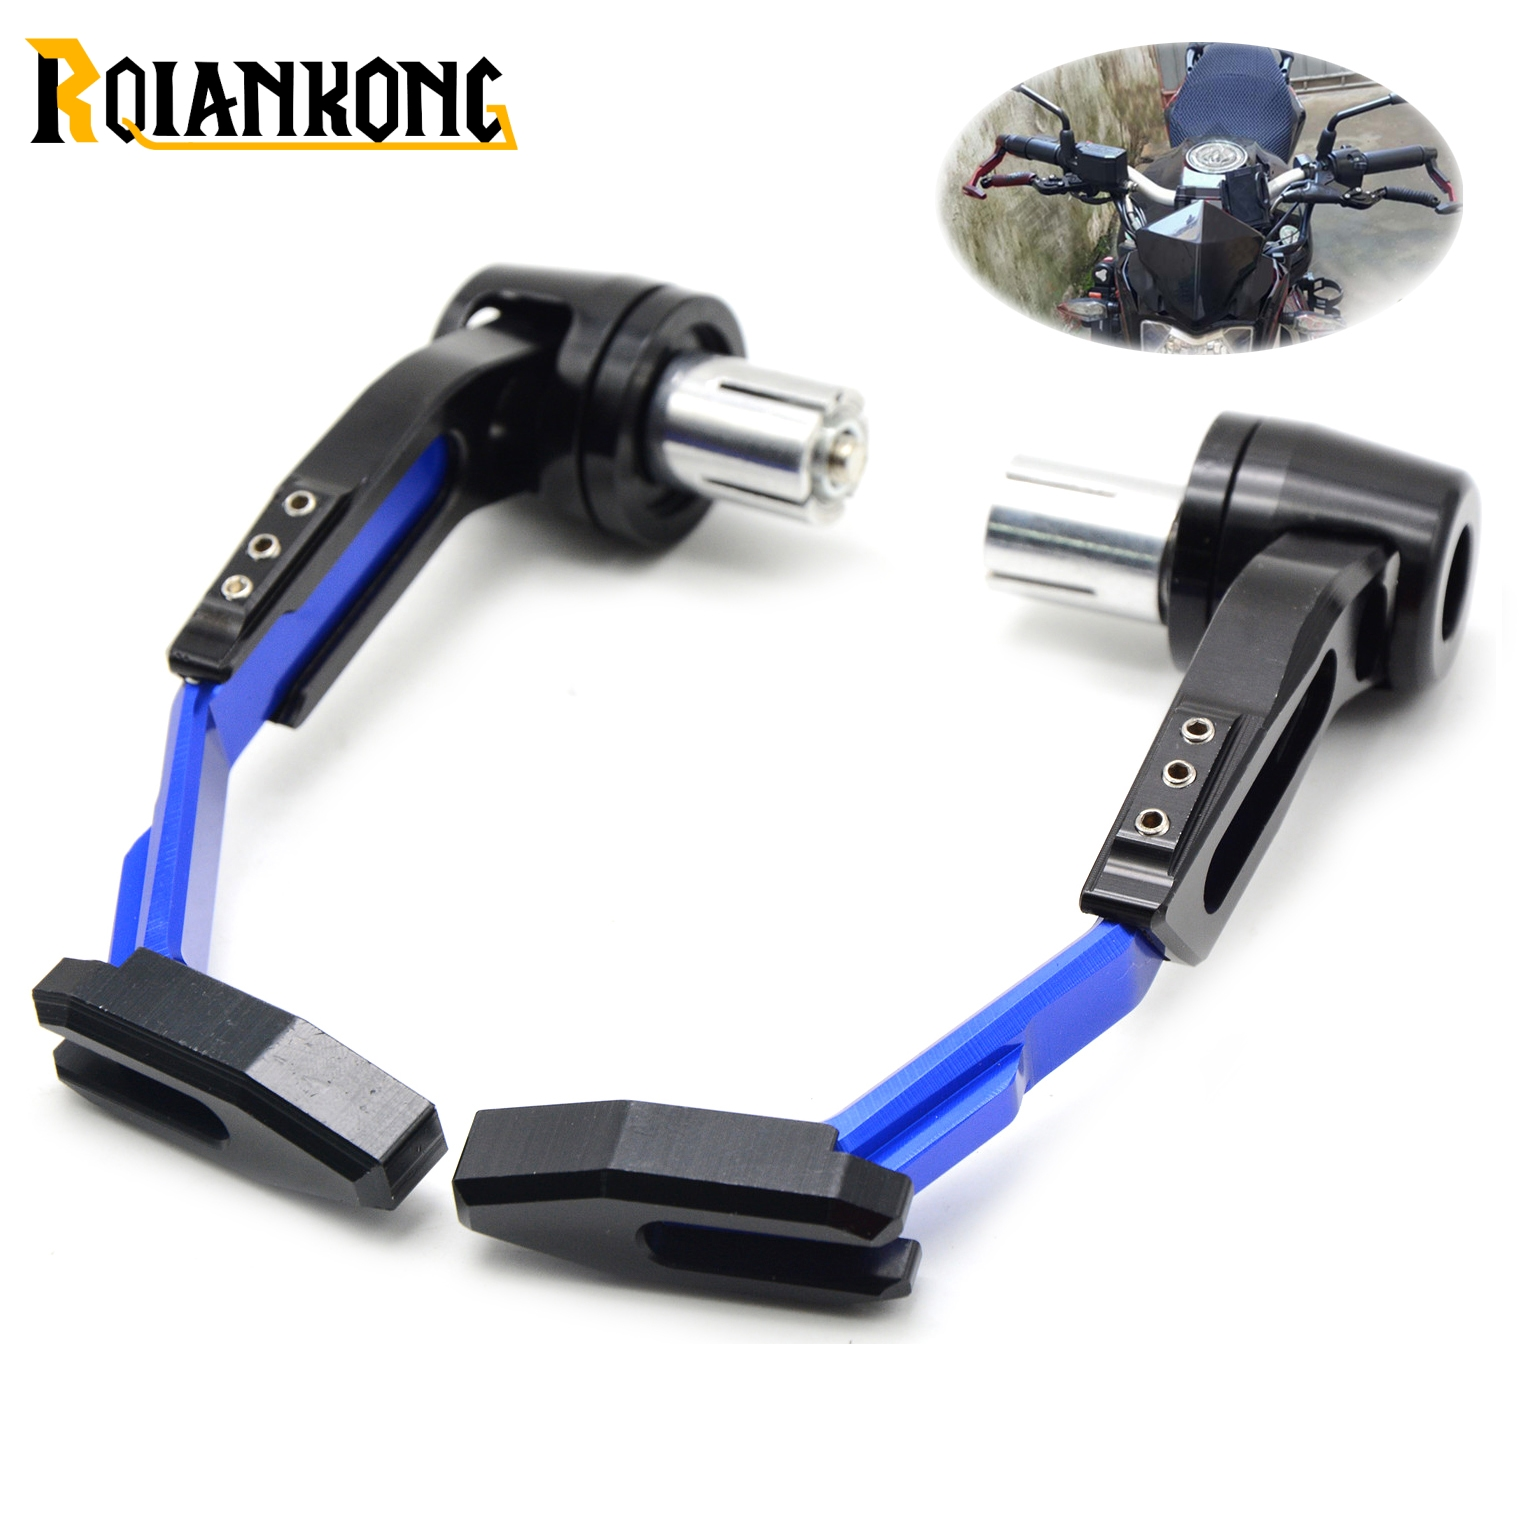 Universal 7/822mm Motorcycle Handlebar Clutch Brake Lever Protect Guard for SUZUKI SV 650 sv650 sv650s aprilia pegaso TL1000S for 22mm 7 8 handlebar motorcycle dirt bike universal stunt clutch lever assembly cnc aluminum